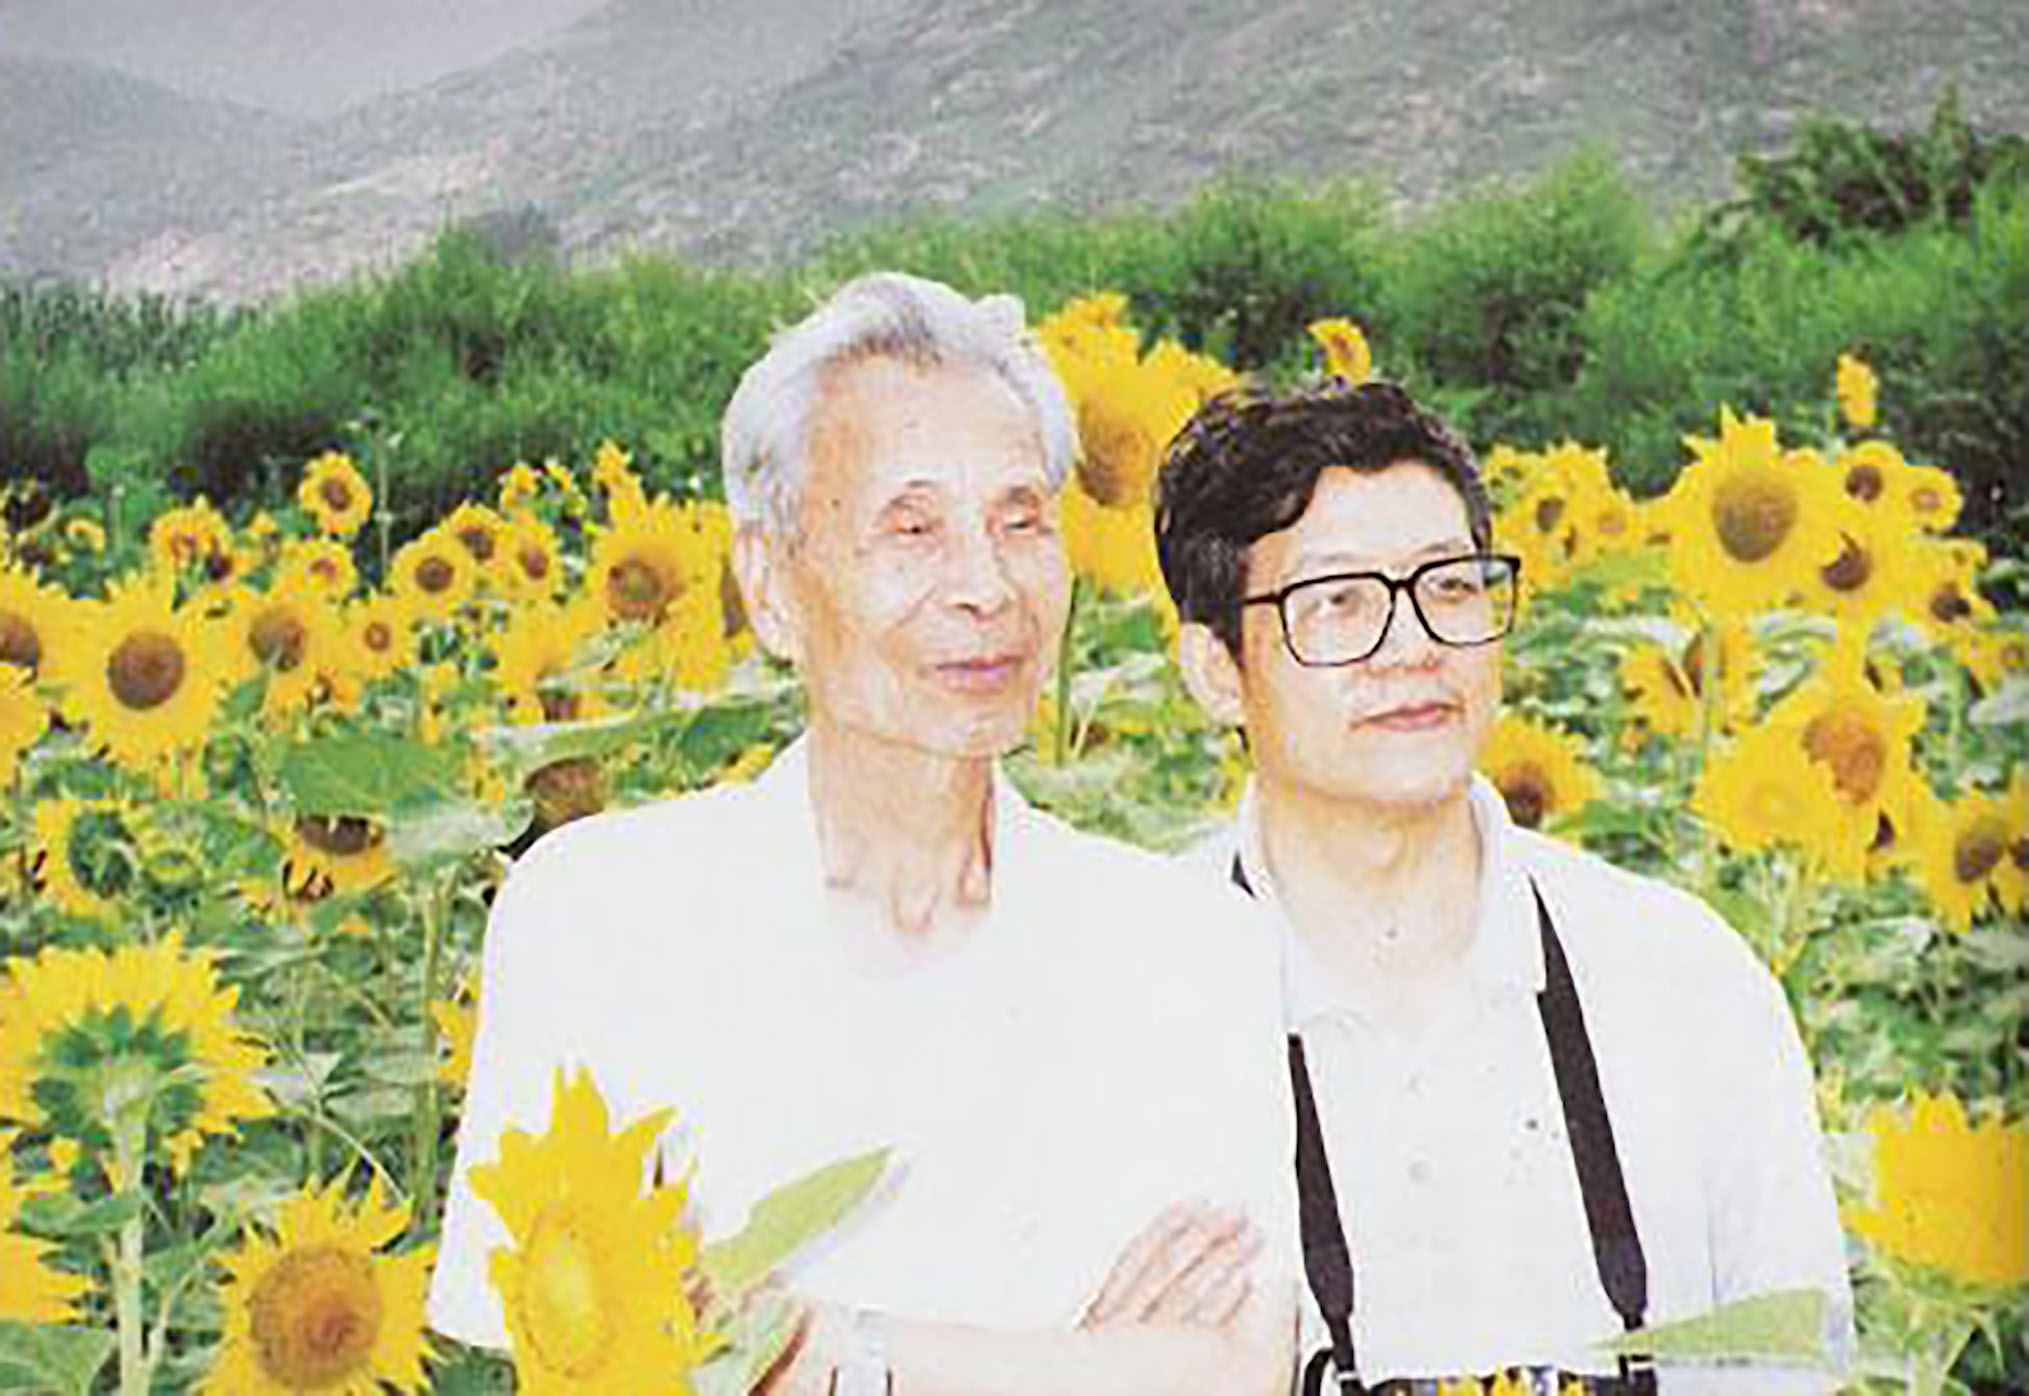 Born 1942 in Kunming, Yunnan, Li Fuyuan has established a great reputation in the art scene. He has exhibited his artwork all over the world and Gallery NaWei is pleased to feature his wonderful collection.  Li ( pictured right ) is a Chinese Asian Modern & Contemporary artist who as a student of renowned Master Wu Guanzhong ( pictured left ) honed in on an amazing talent. Similar to his teacher Li finds a delight in nature and seeks the best way to show the power of the form he admires.   Through his artwork Li encourages love for all living things and his appreciation for the beauty creation brings to the world is evident through his painting.  Imagination is let run free in Li's work and the viewer can't help but be absorbed in his vision.